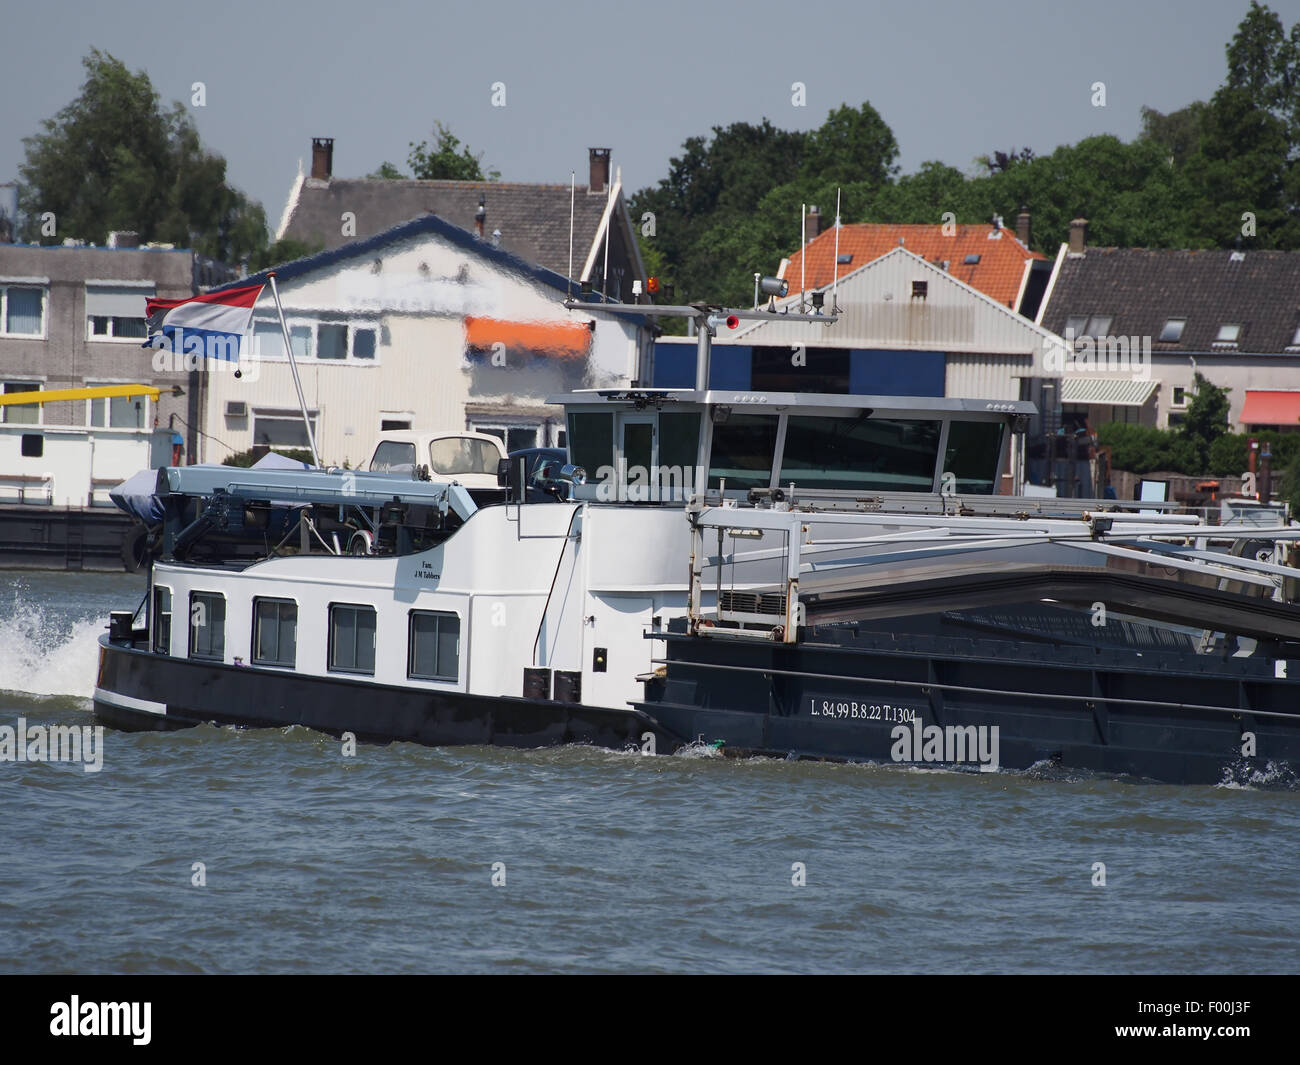 Deviant - ENI 03310475, Noord rivier pic2 - Stock Image